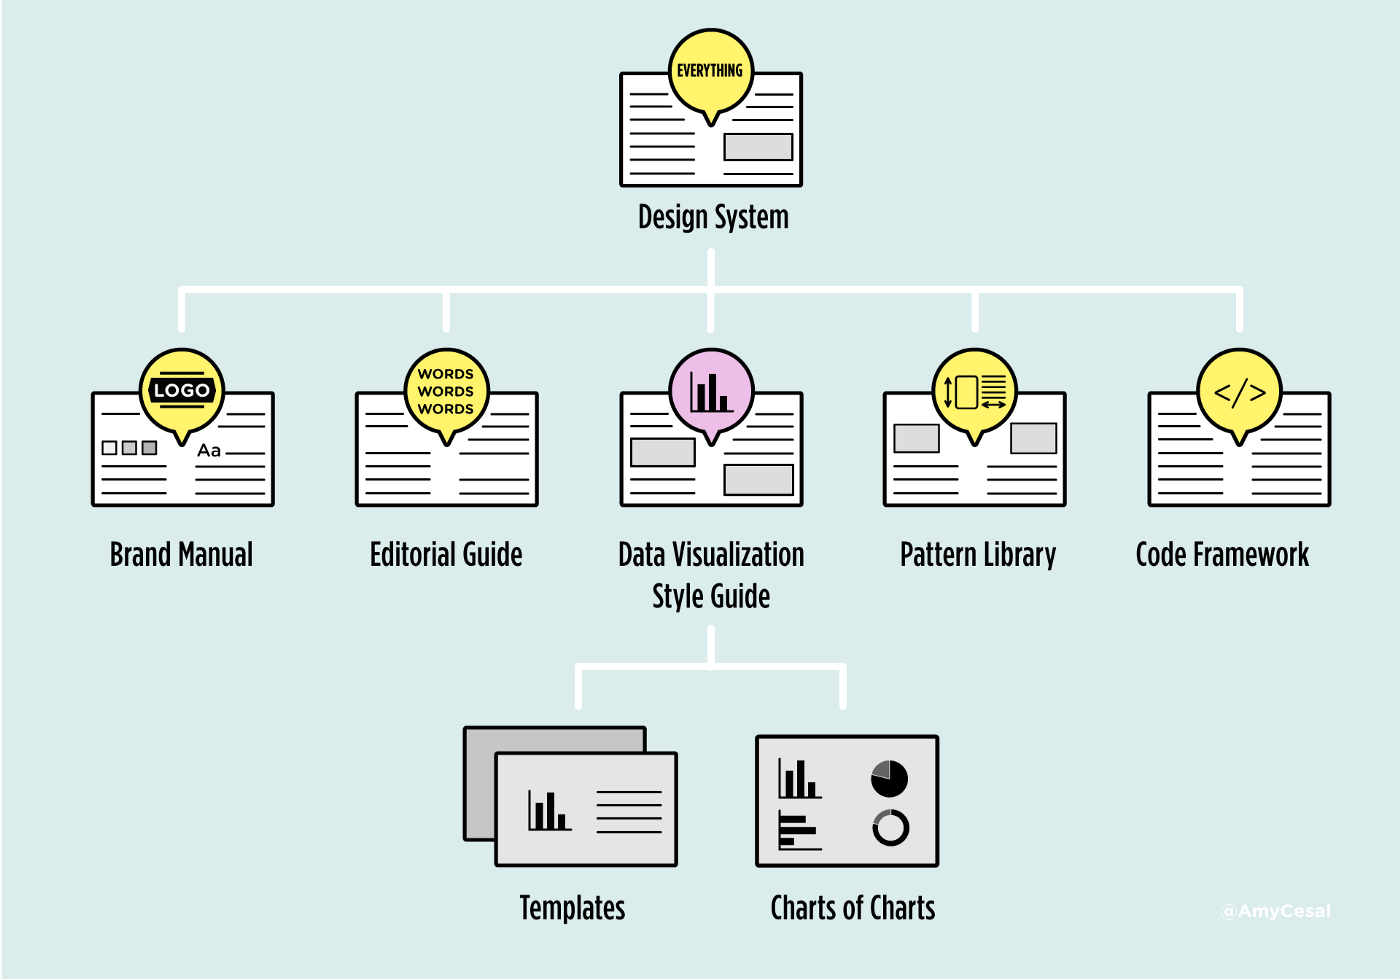 family tree of style guides, all which fit into the broader design system